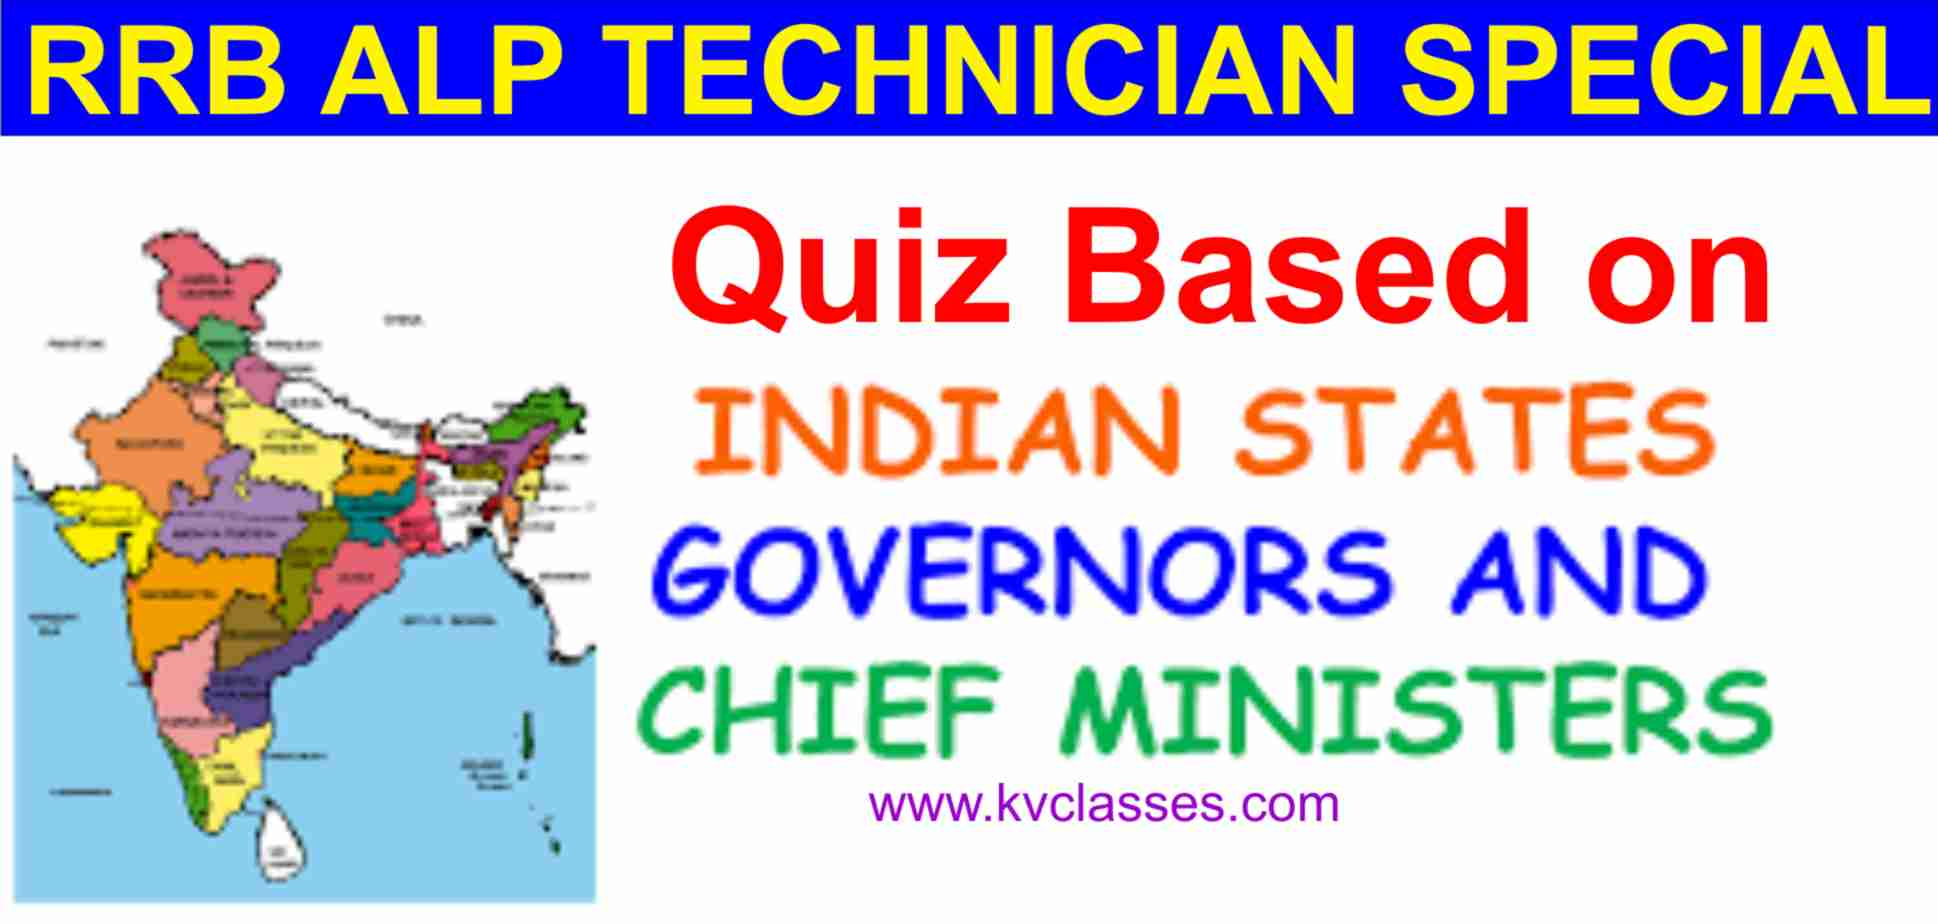 CHIEF MINISTER AND GOVERNOR INDIAN STATES QUIZ-01